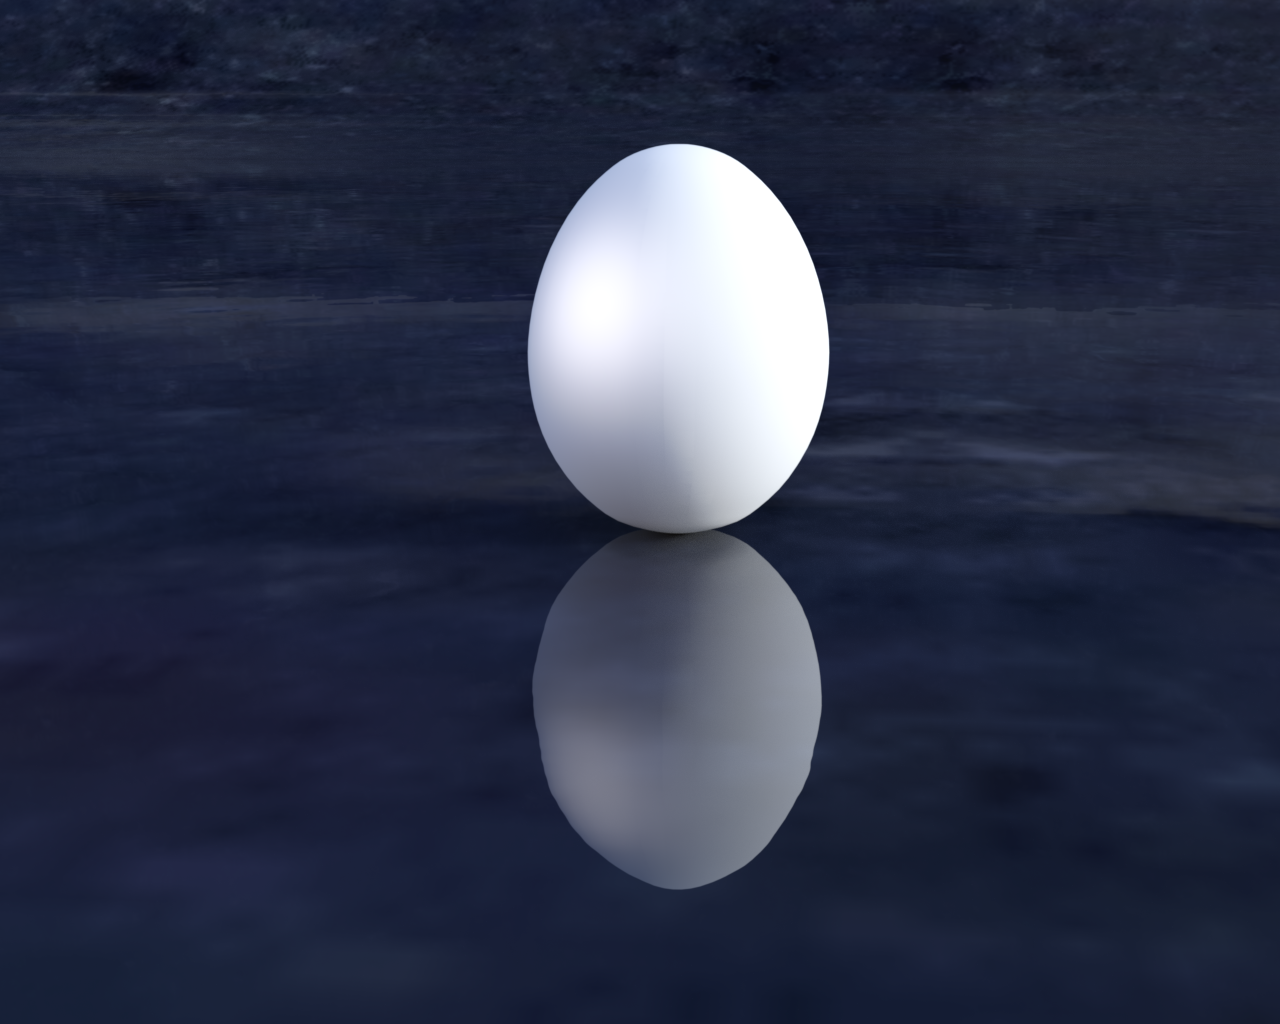 Equinox Egg Balance Science Is It Really Easier On The